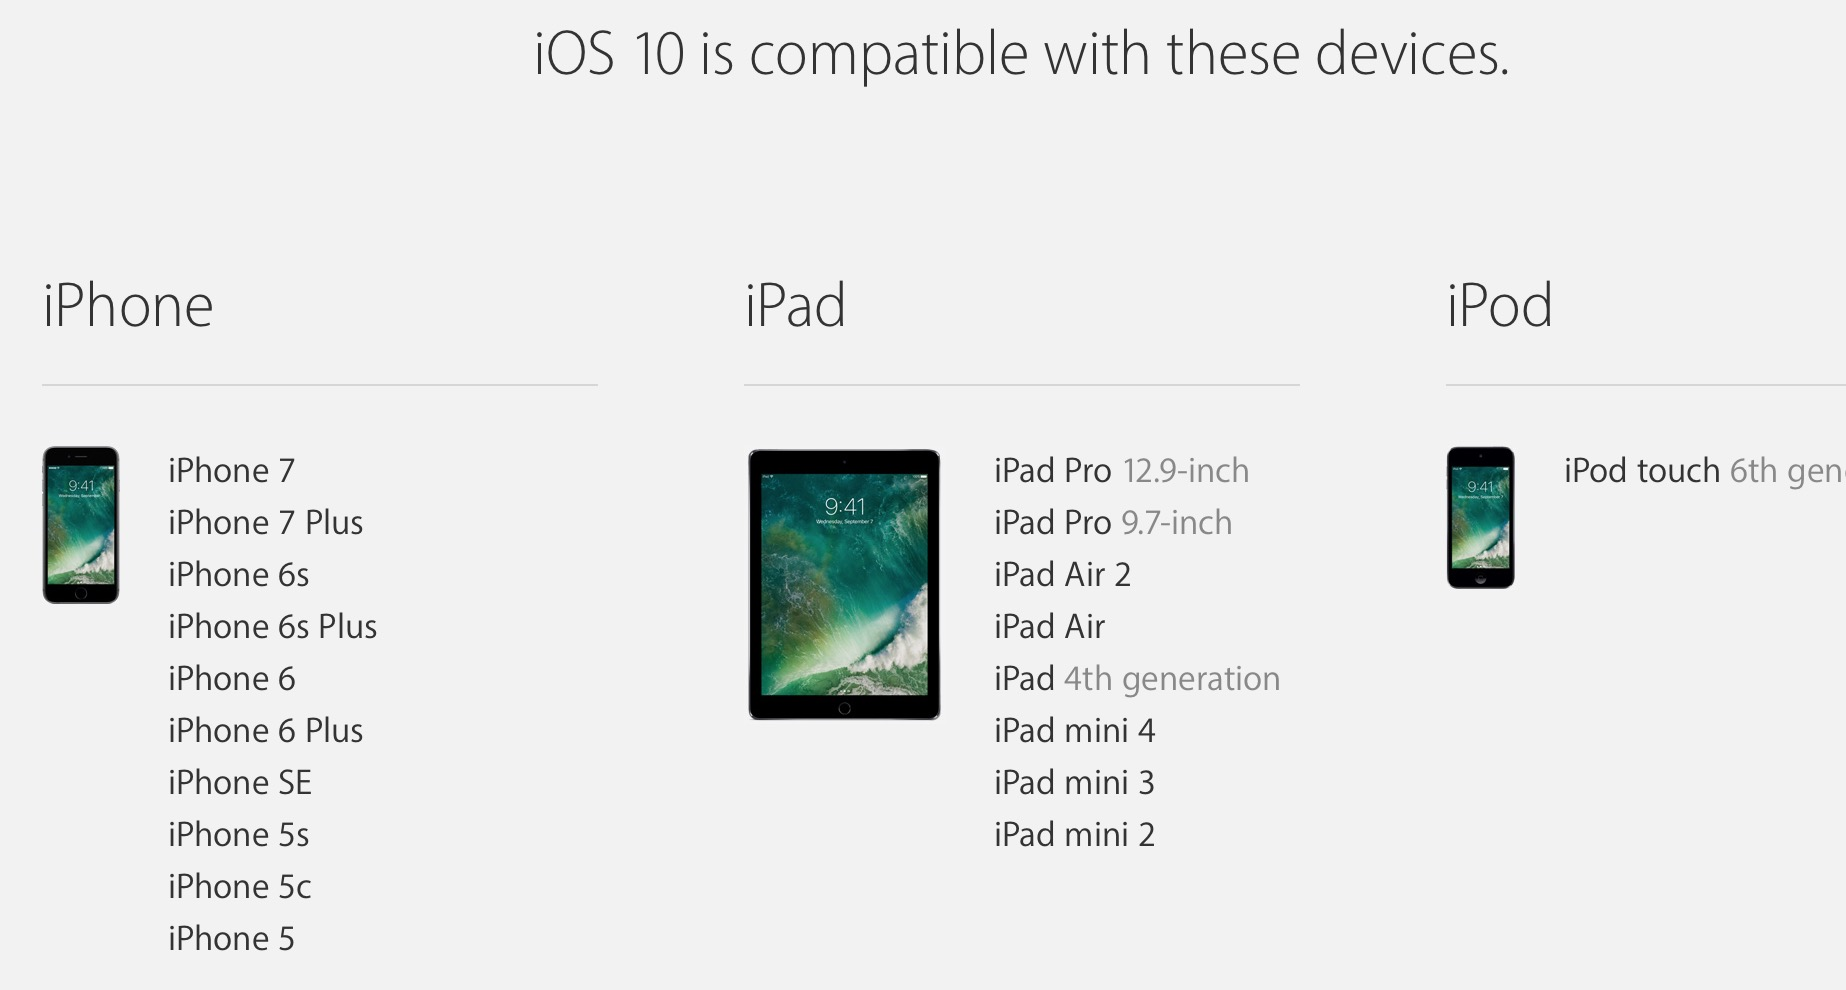 7 Steps To Prepare For Ios 10 Update On Iphone Or Ipad